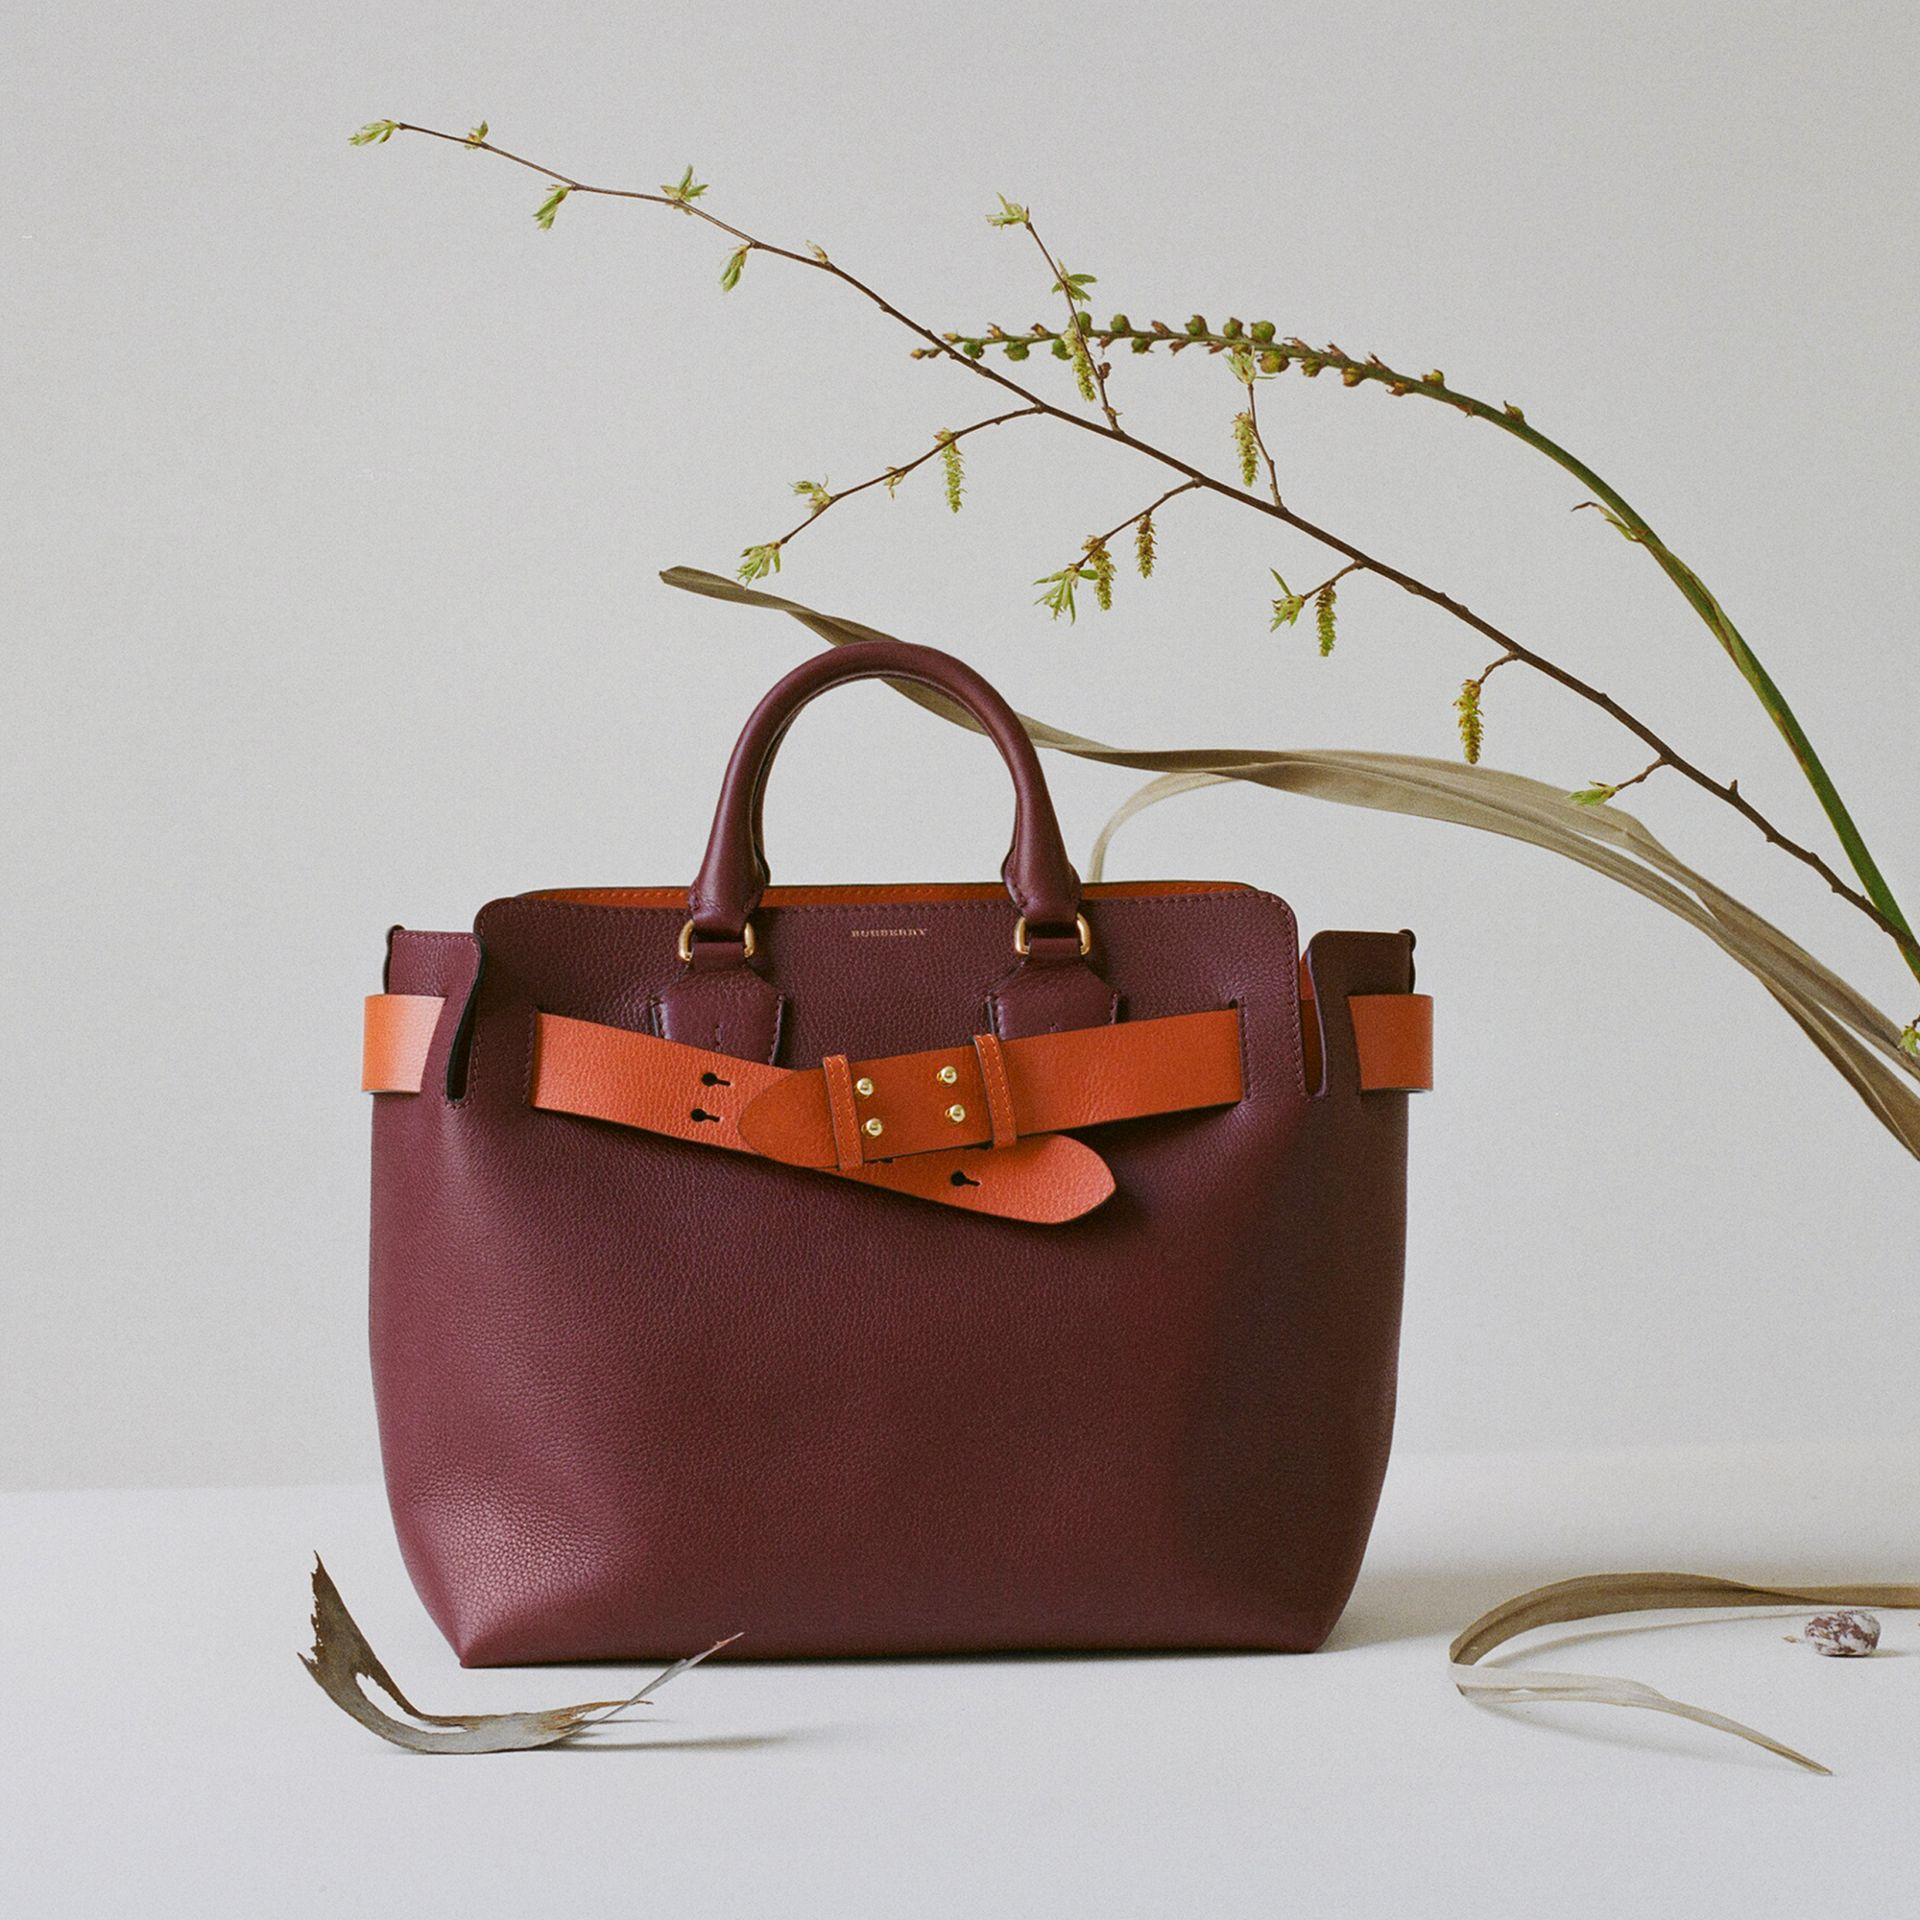 Sac The Belt moyen en cuir (Bordeaux Intense) - Femme | Burberry Canada - photo de la galerie 1